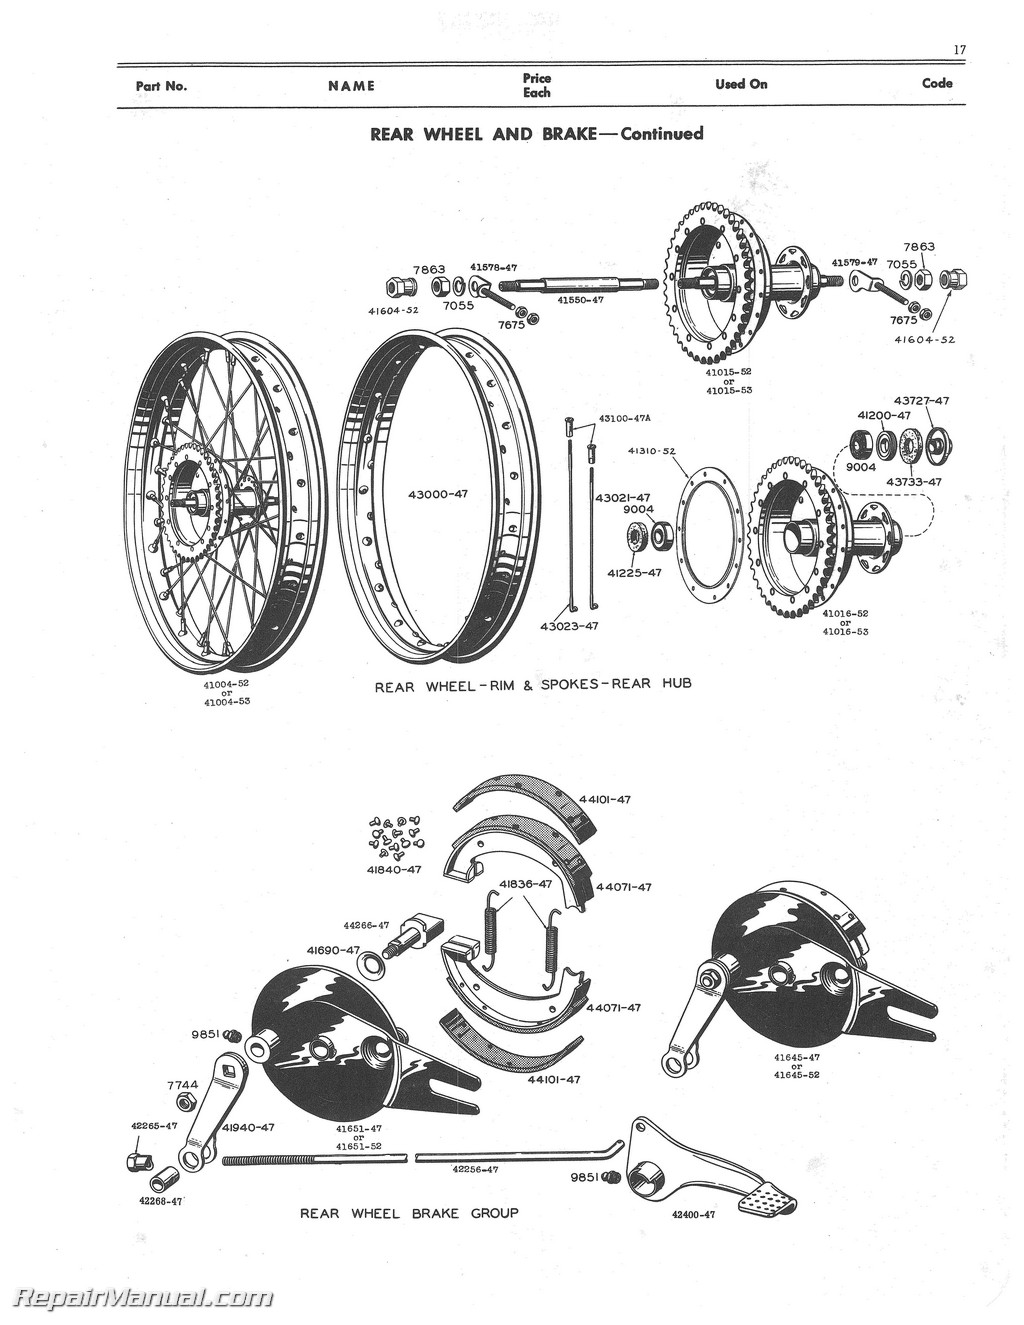 Harley Parts Diagrams Online • Wiring Diagram For Free